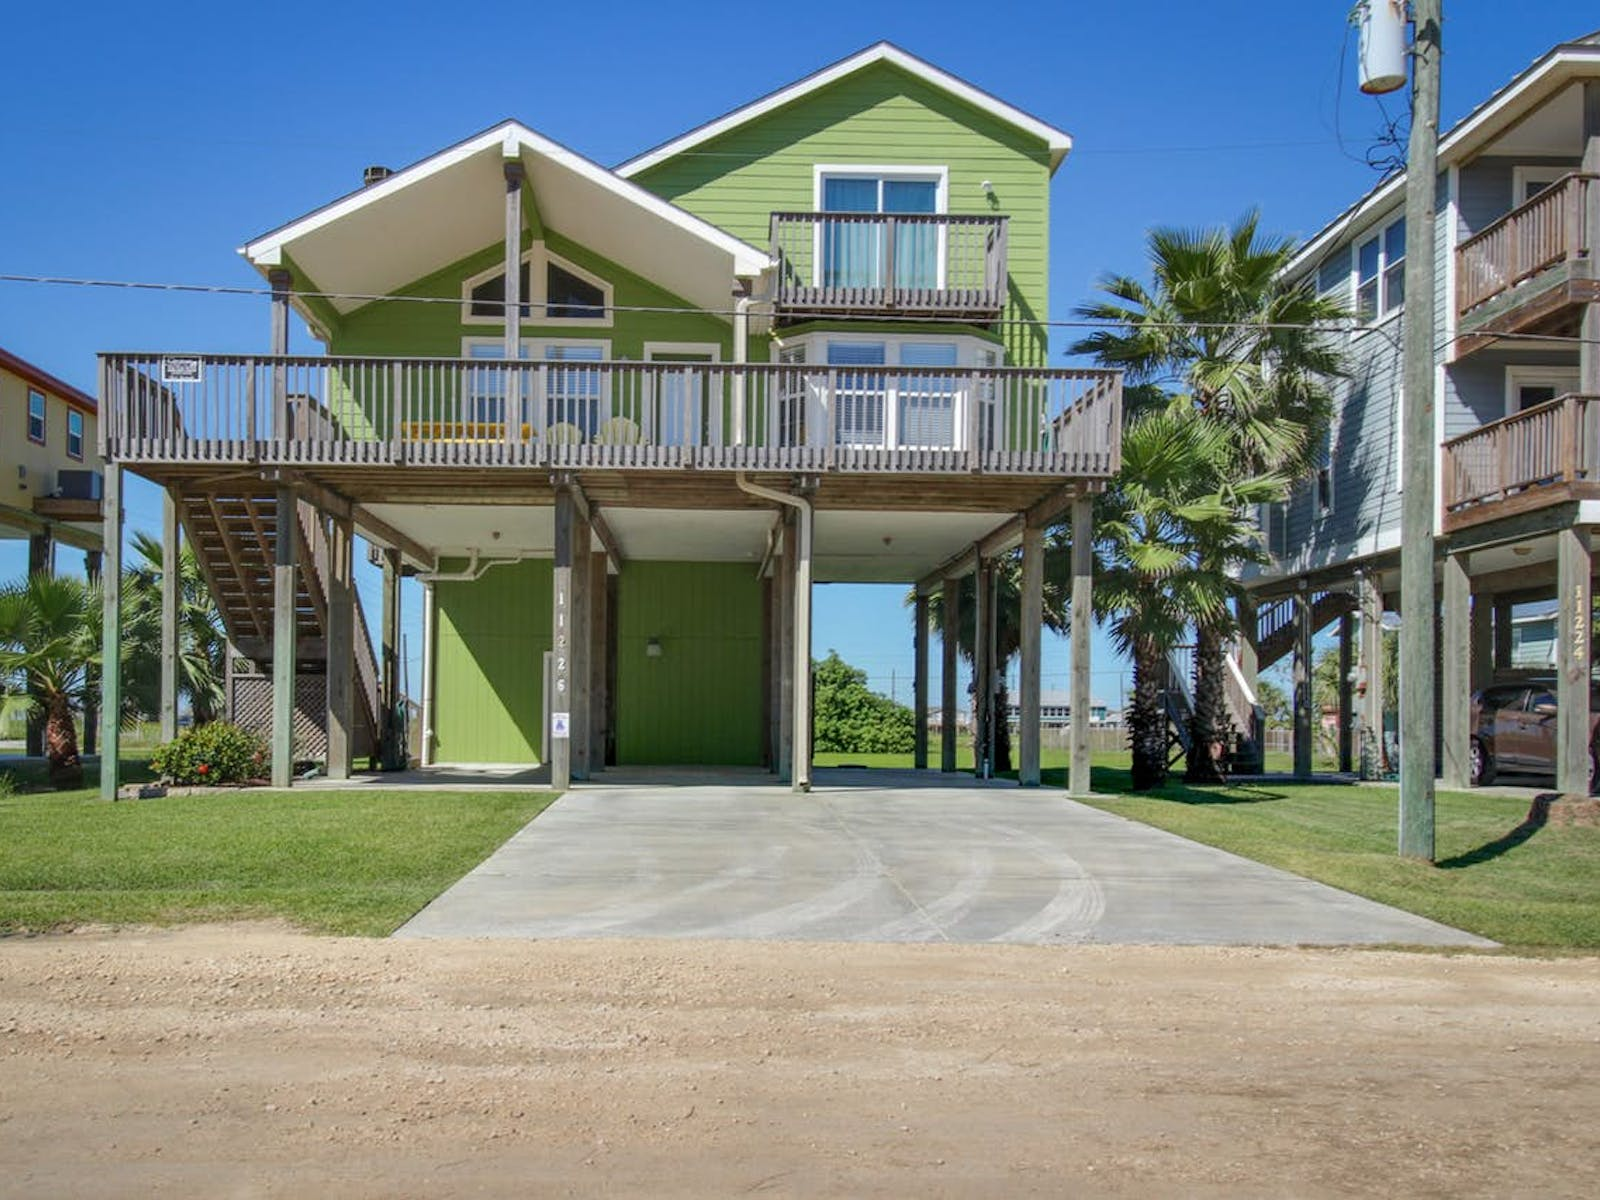 Lime green vacation home in Galveston, TX